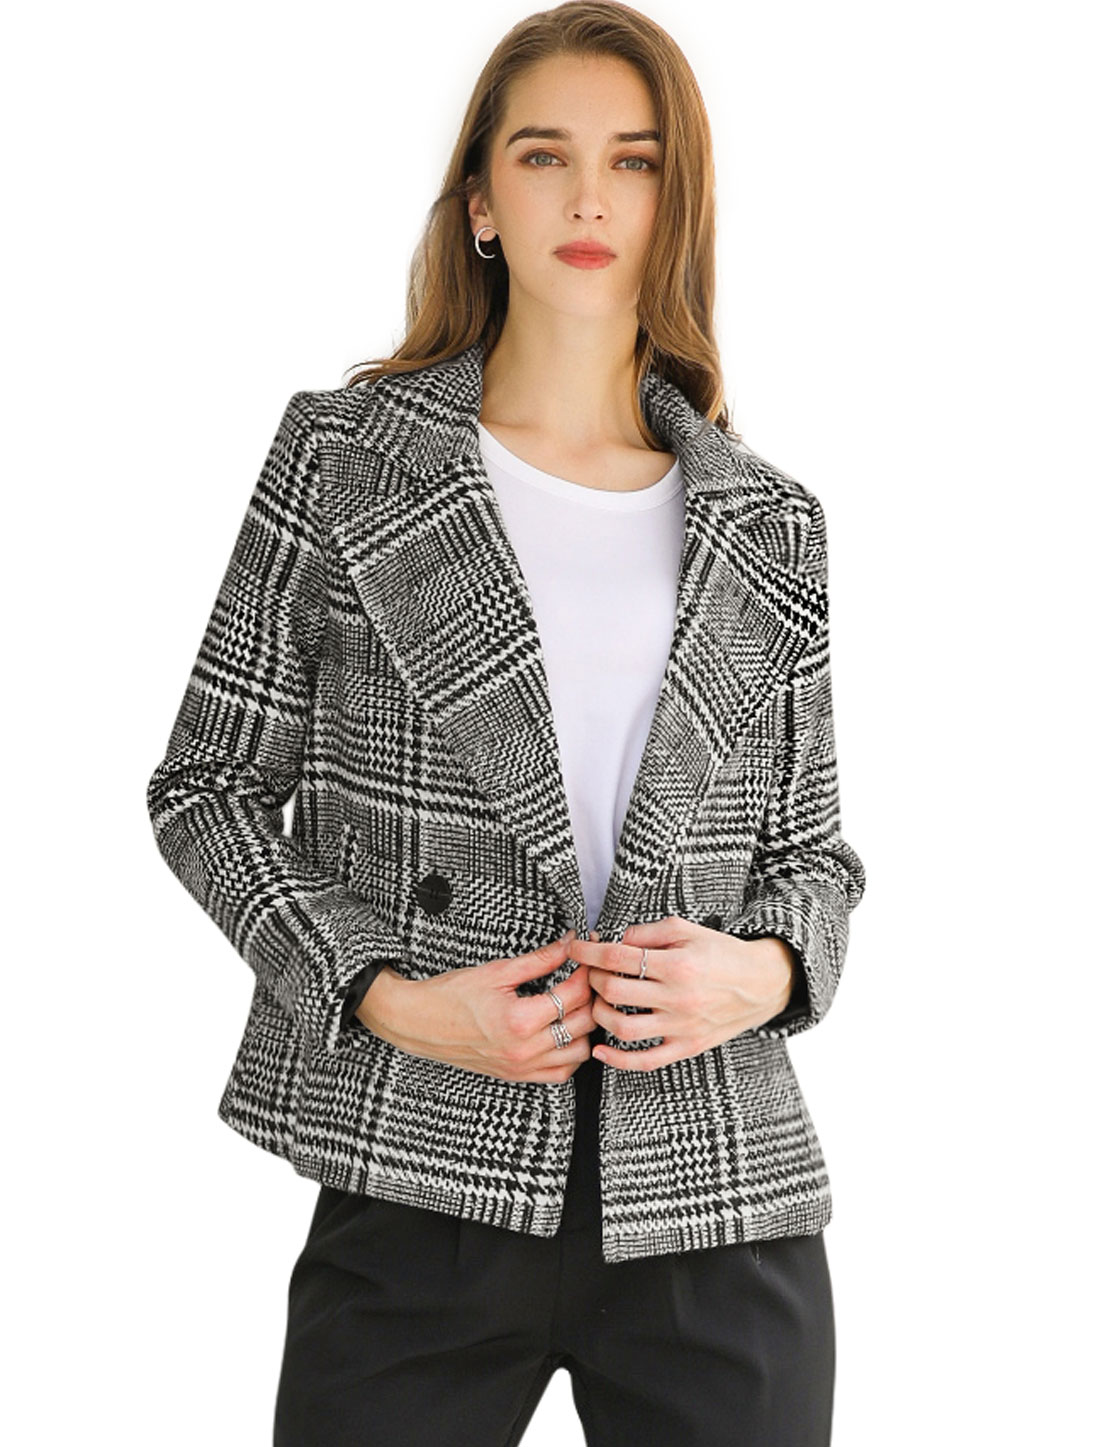 Allegra K Women's Check Casual Jacket Notched Lapel Coat Black S